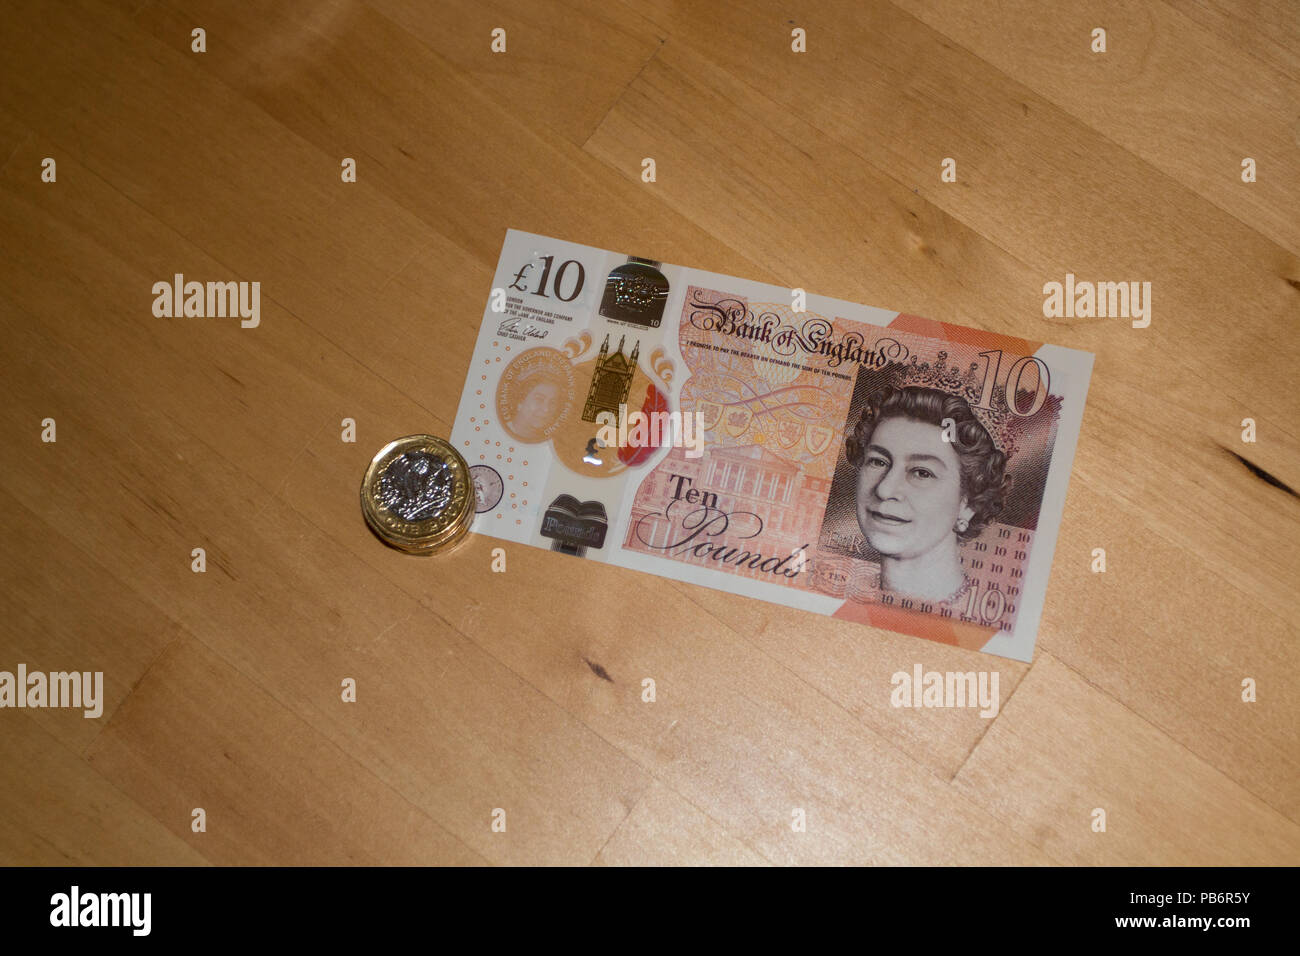 TEN POUND NOTE: New Ten Pound Note issued in 2018 - Stock Image